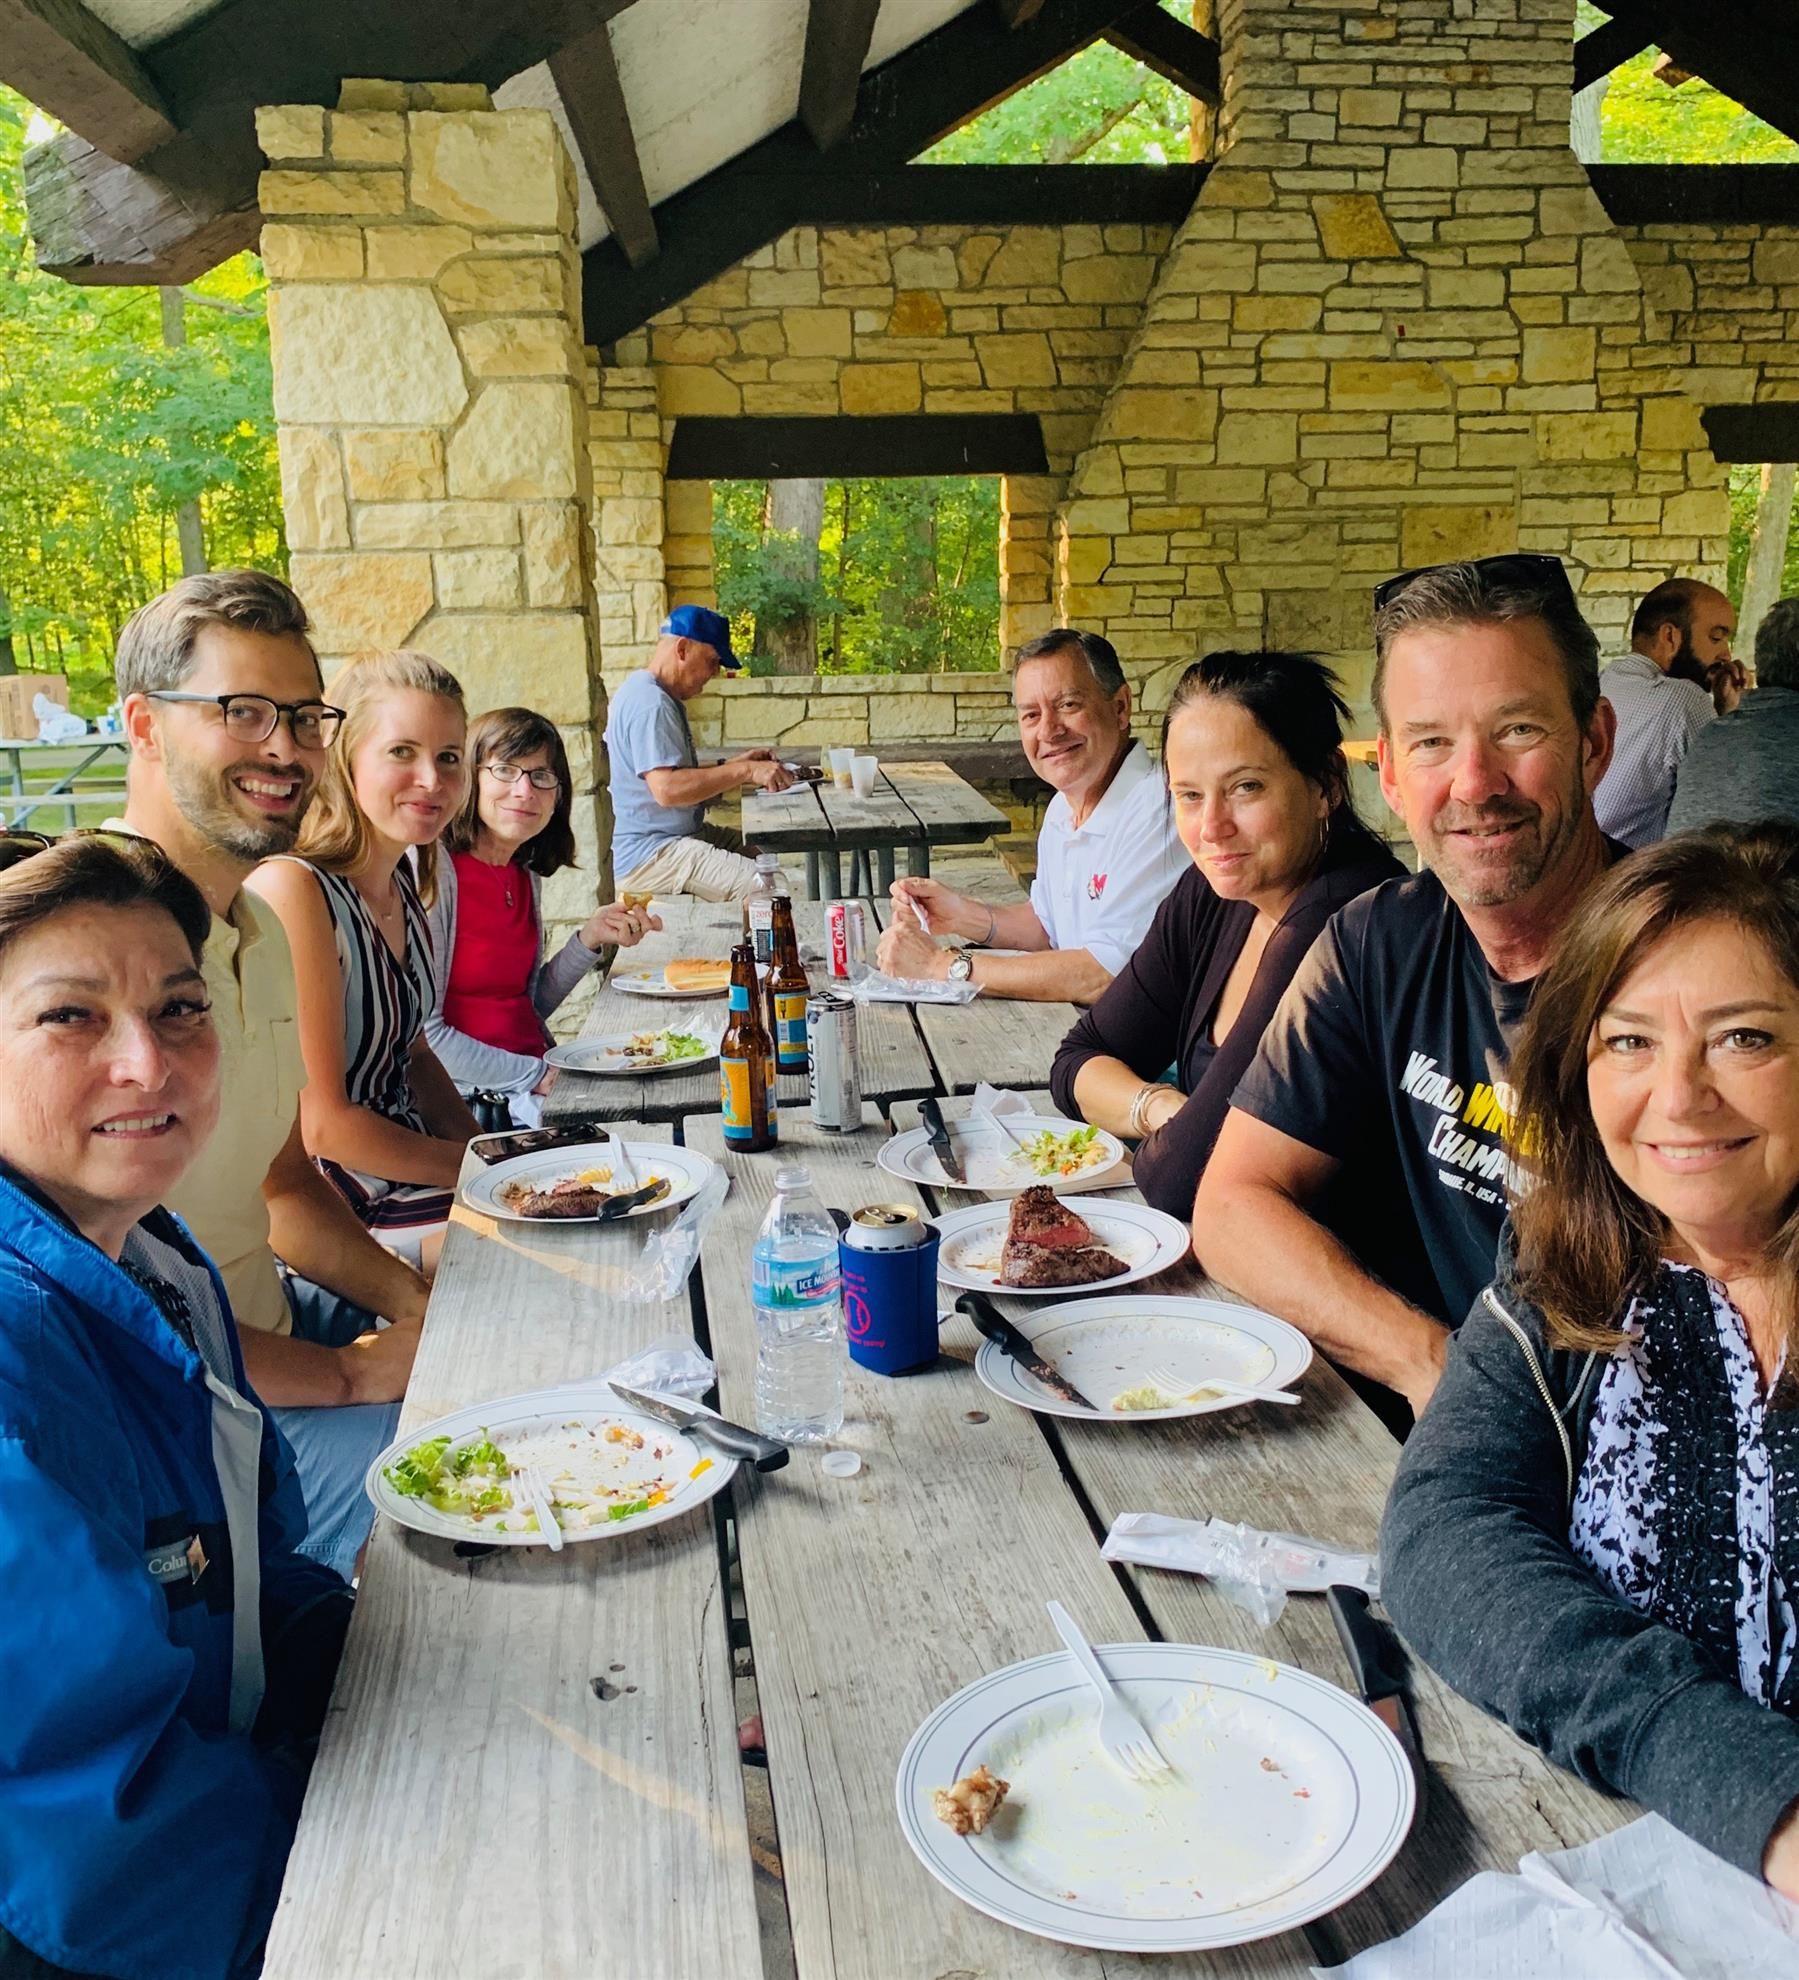 Date Of Membership Luncheon In Calendar January 2020 At The Club At Peterson Air Force Base Home Page | Rotary Club of Skokie Valley